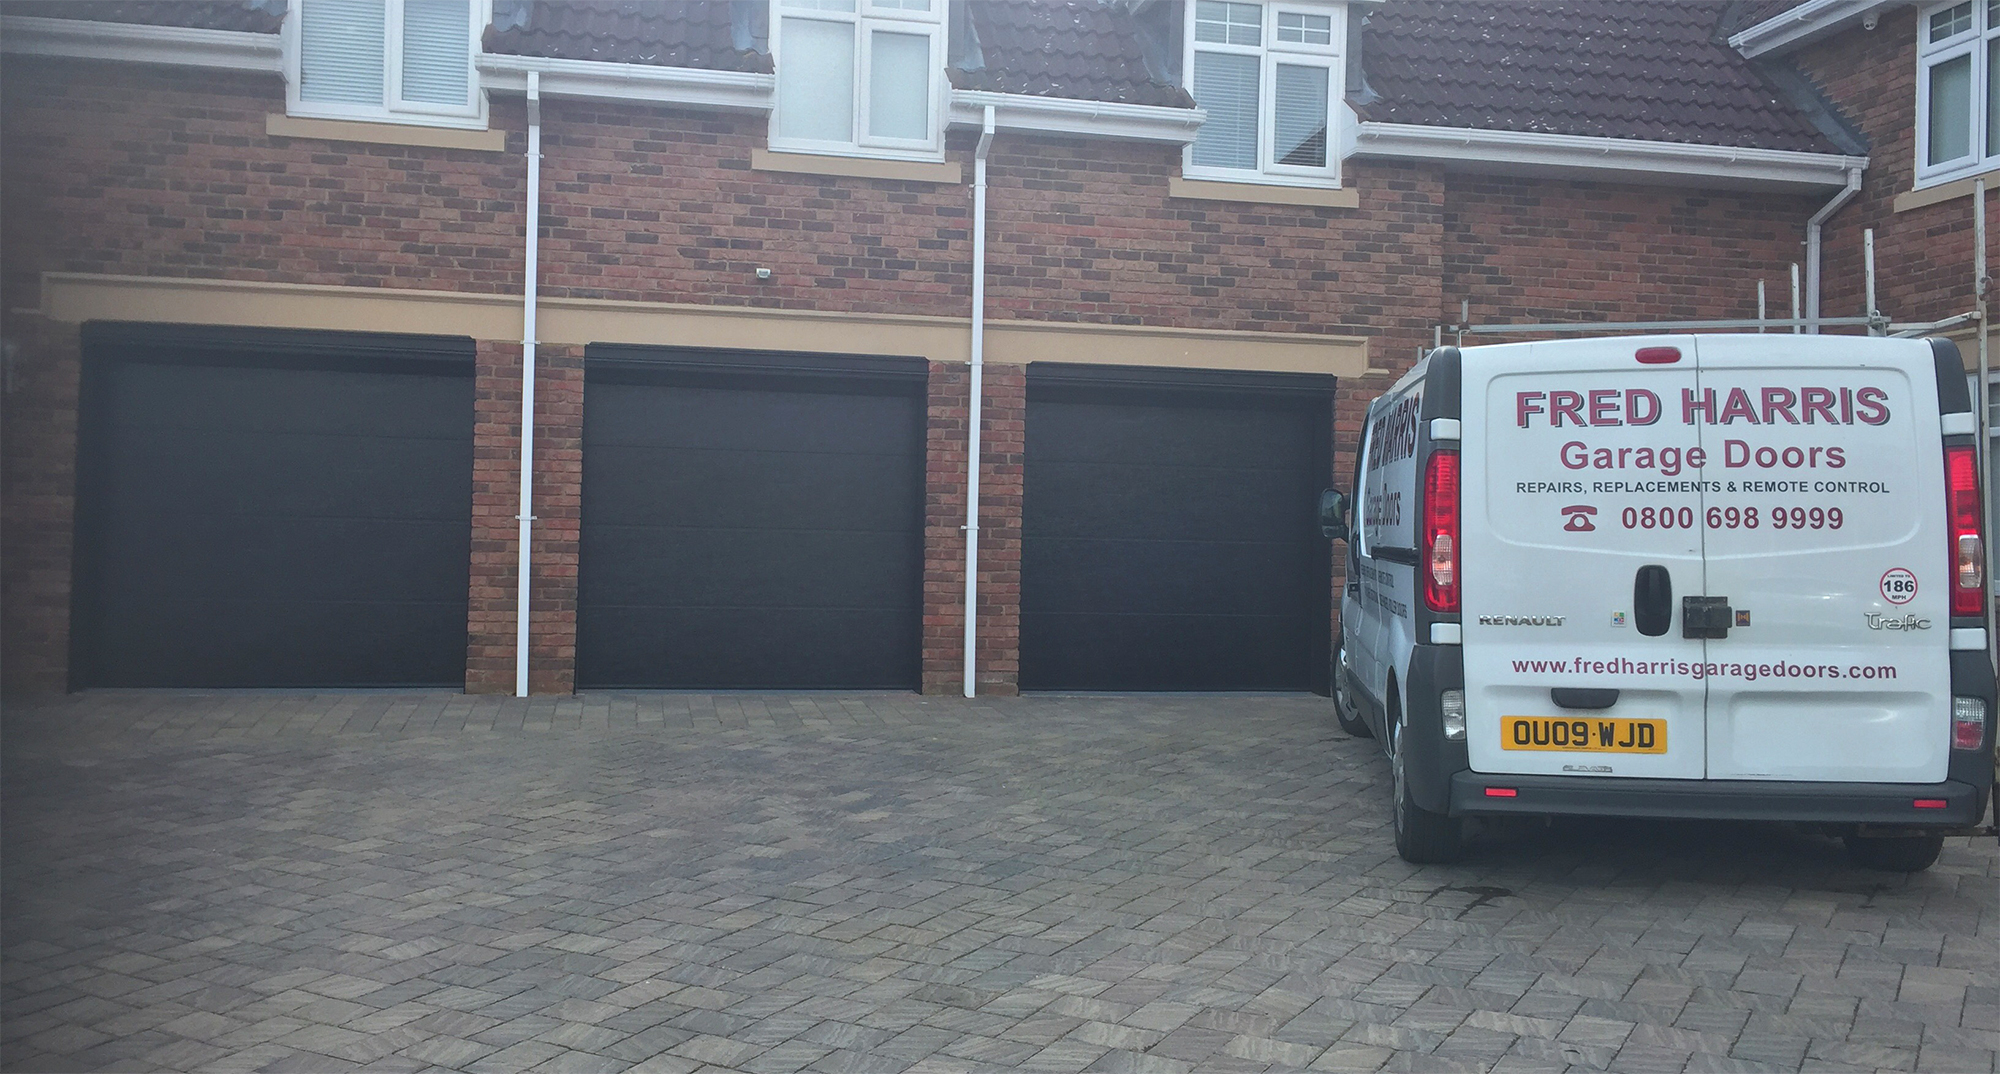 Fred Harris Garage Doors Northampton Fred Harris Garage Doors